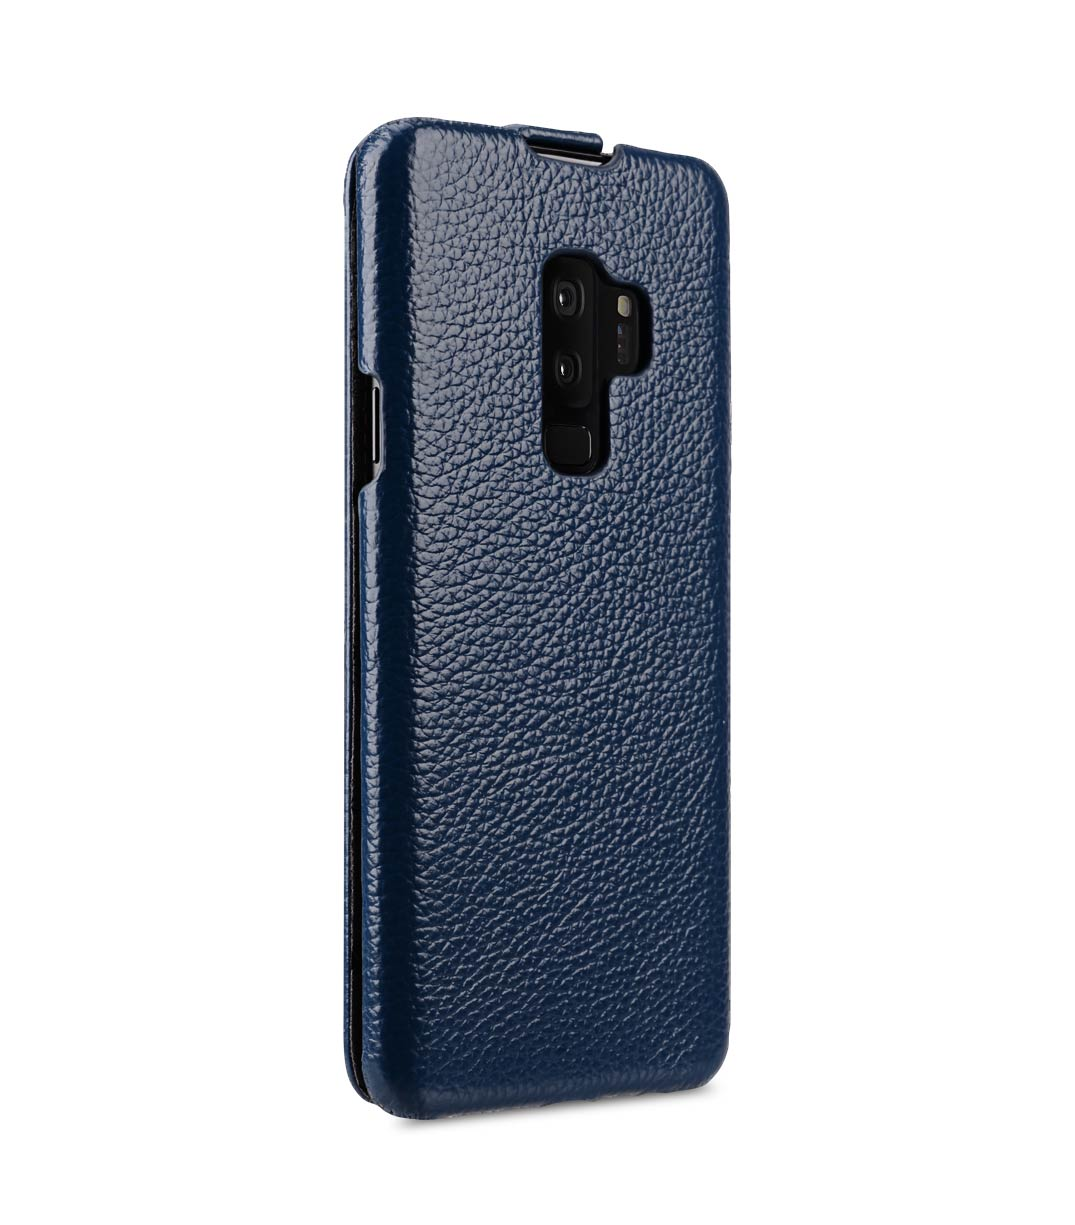 Melkco Premium Leather Case for Samsung Galaxy S9 Plus - Jacka Type (Dark Blue LC)